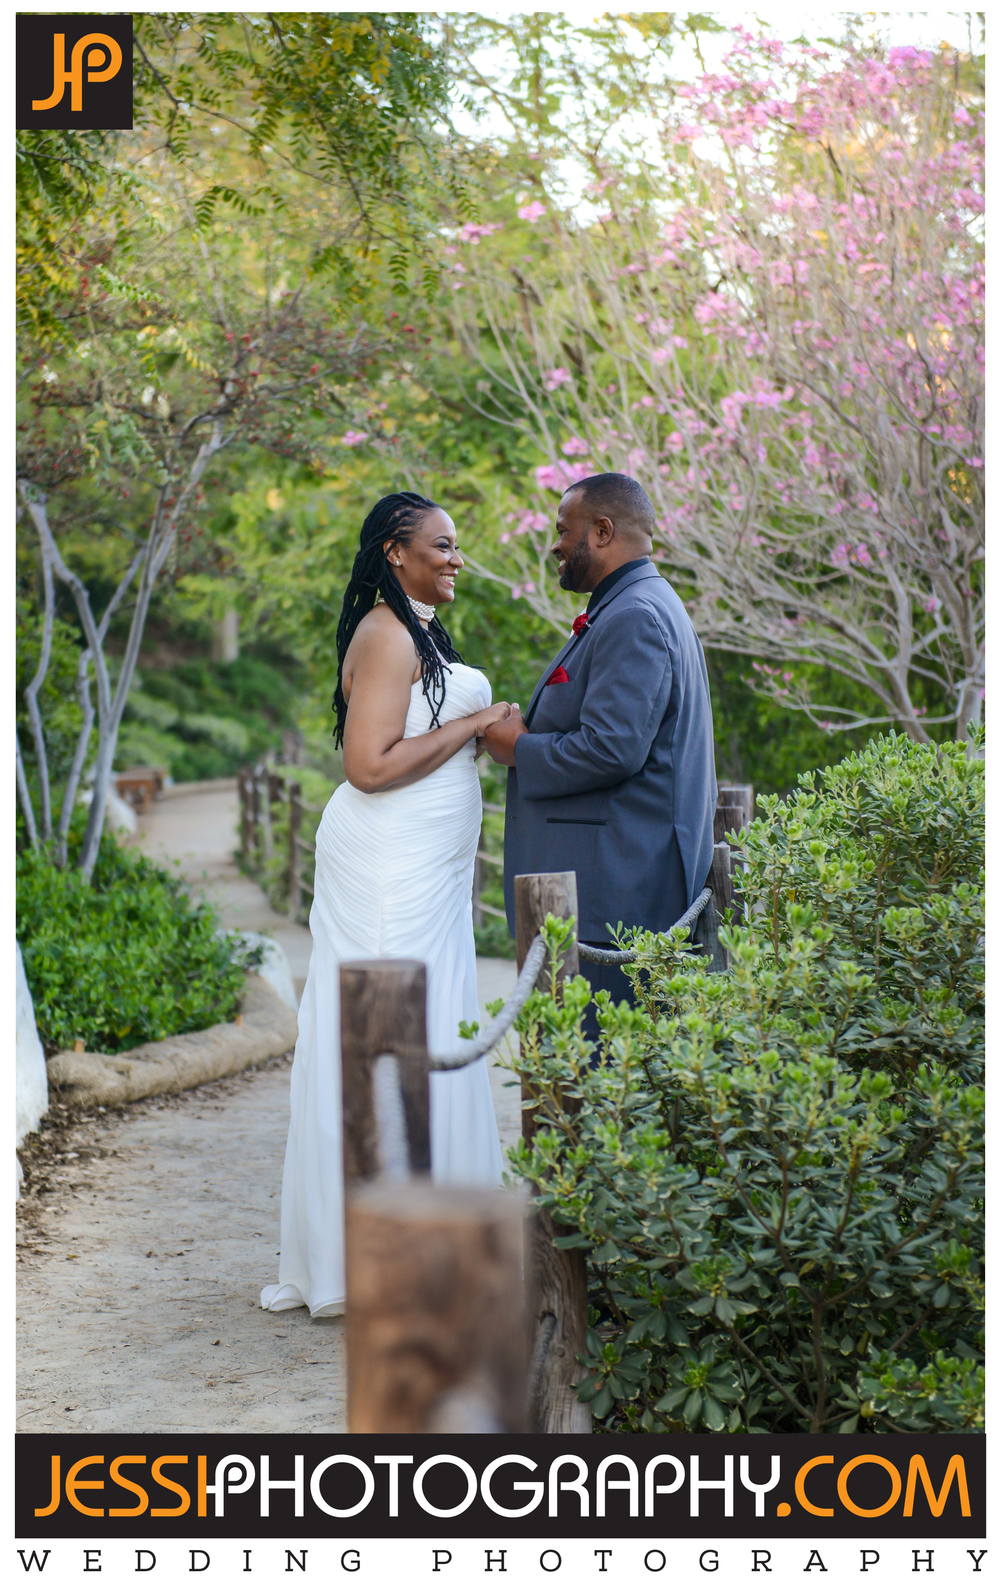 Top wedding photography portrait in San Diego the Japanese Garden